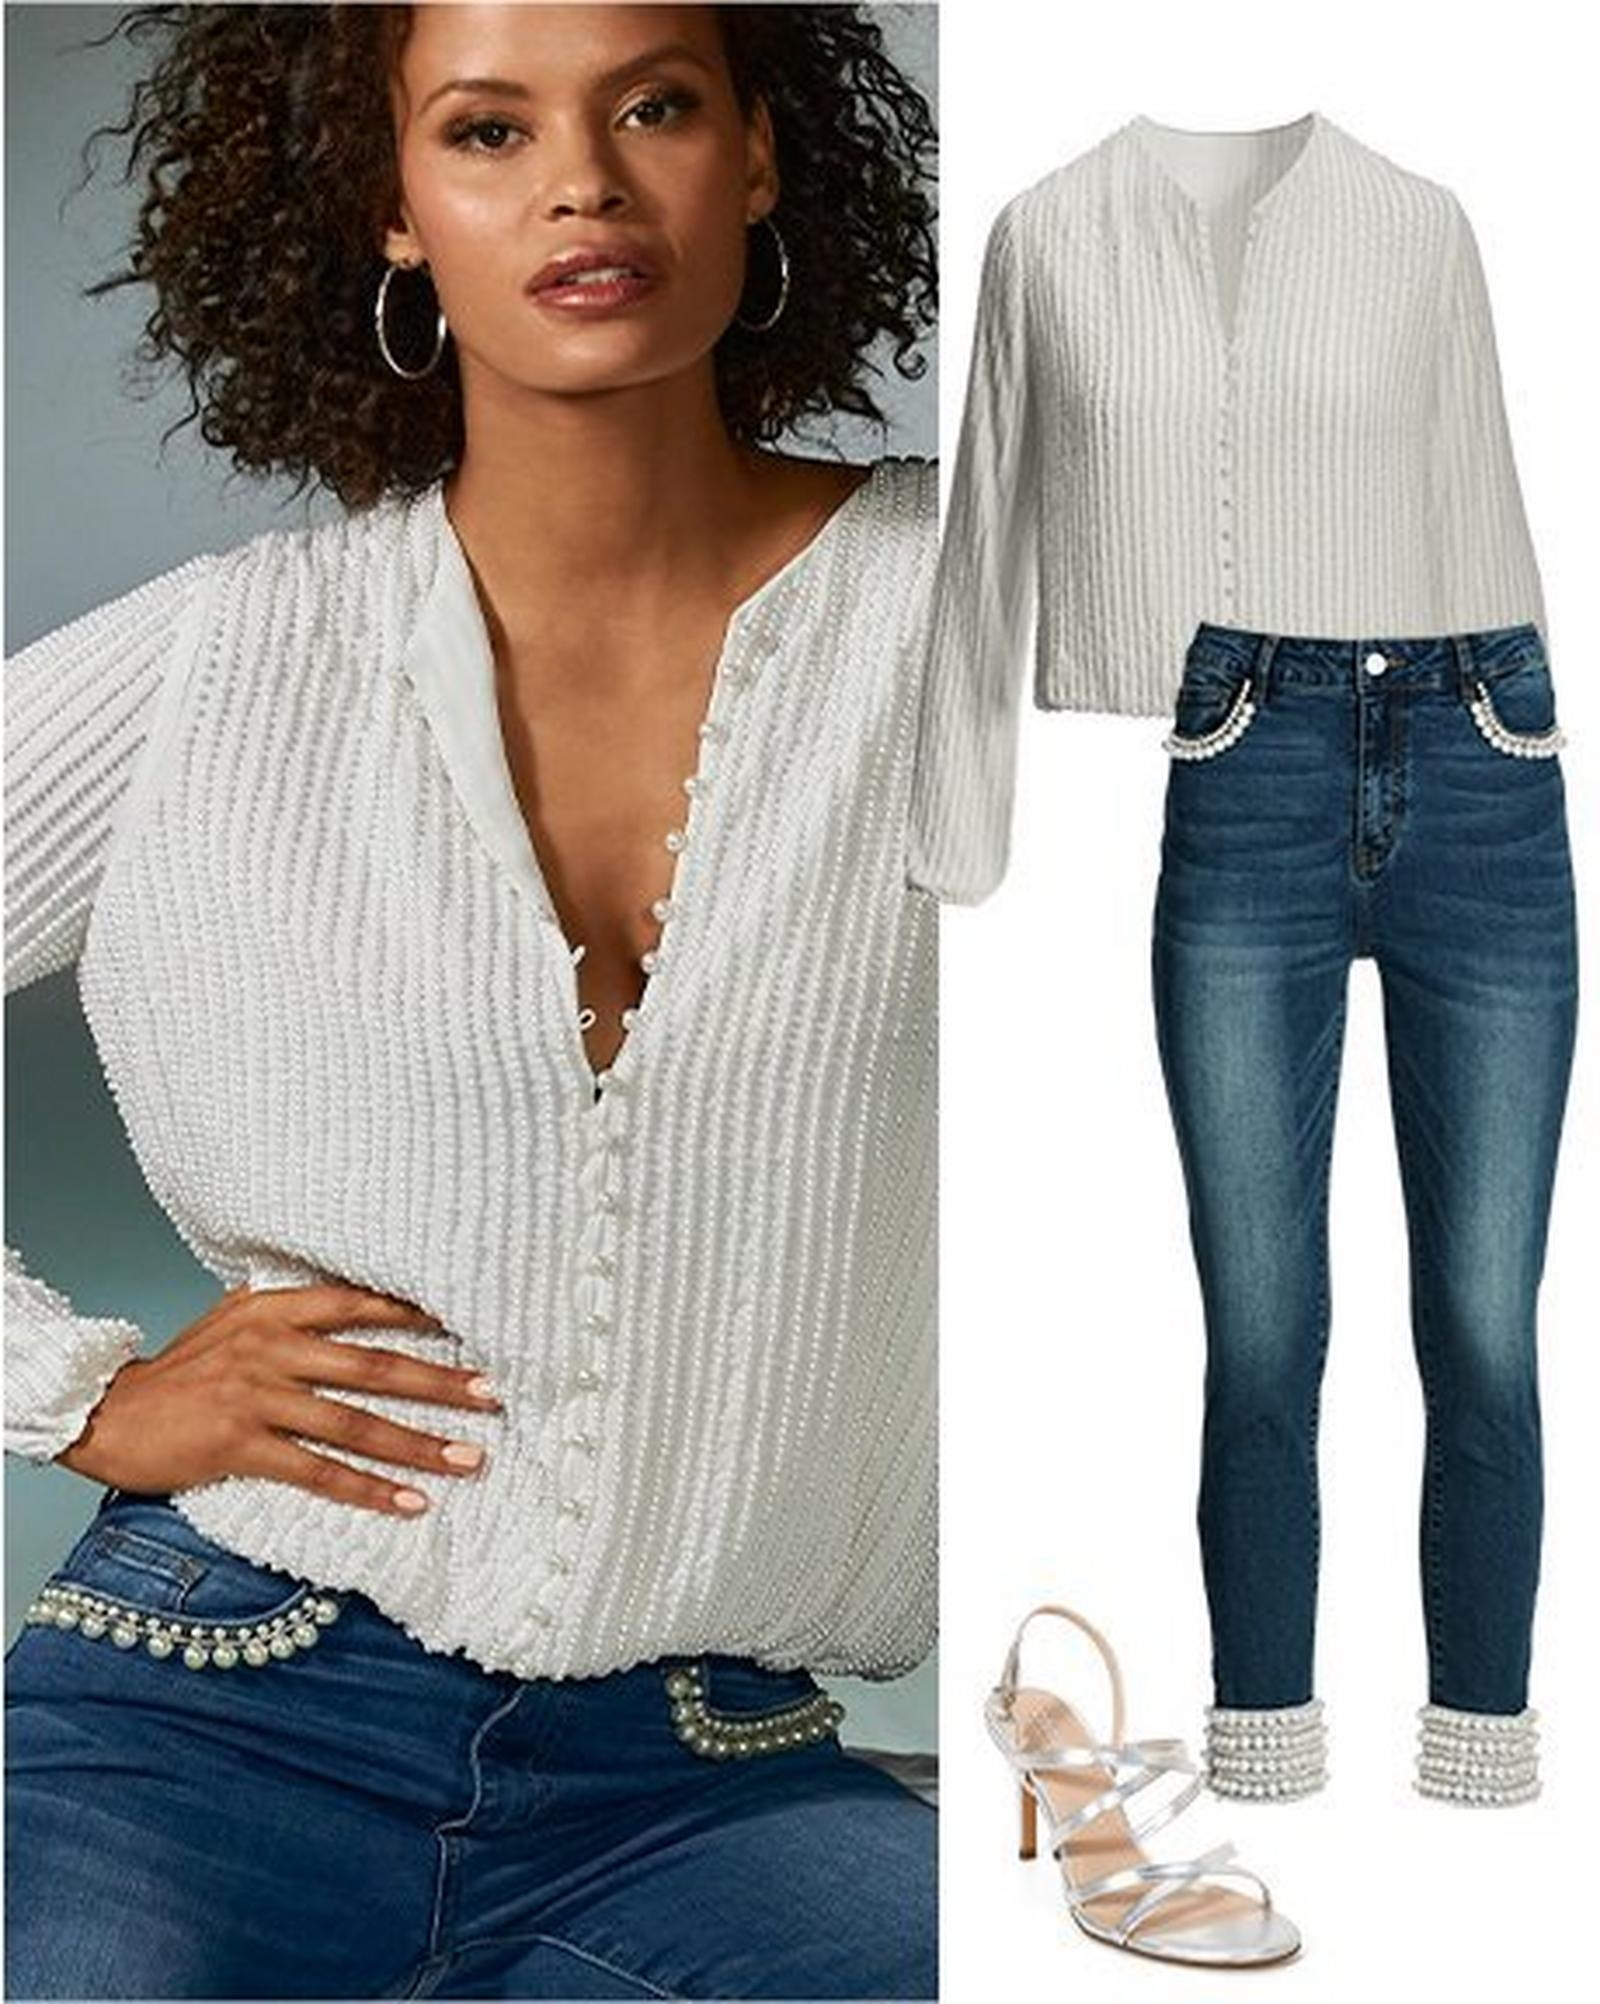 model wearing a pearl embellished button-down top and pearl embellished jeans. to the right: same top and jeans with silver strappy heels.